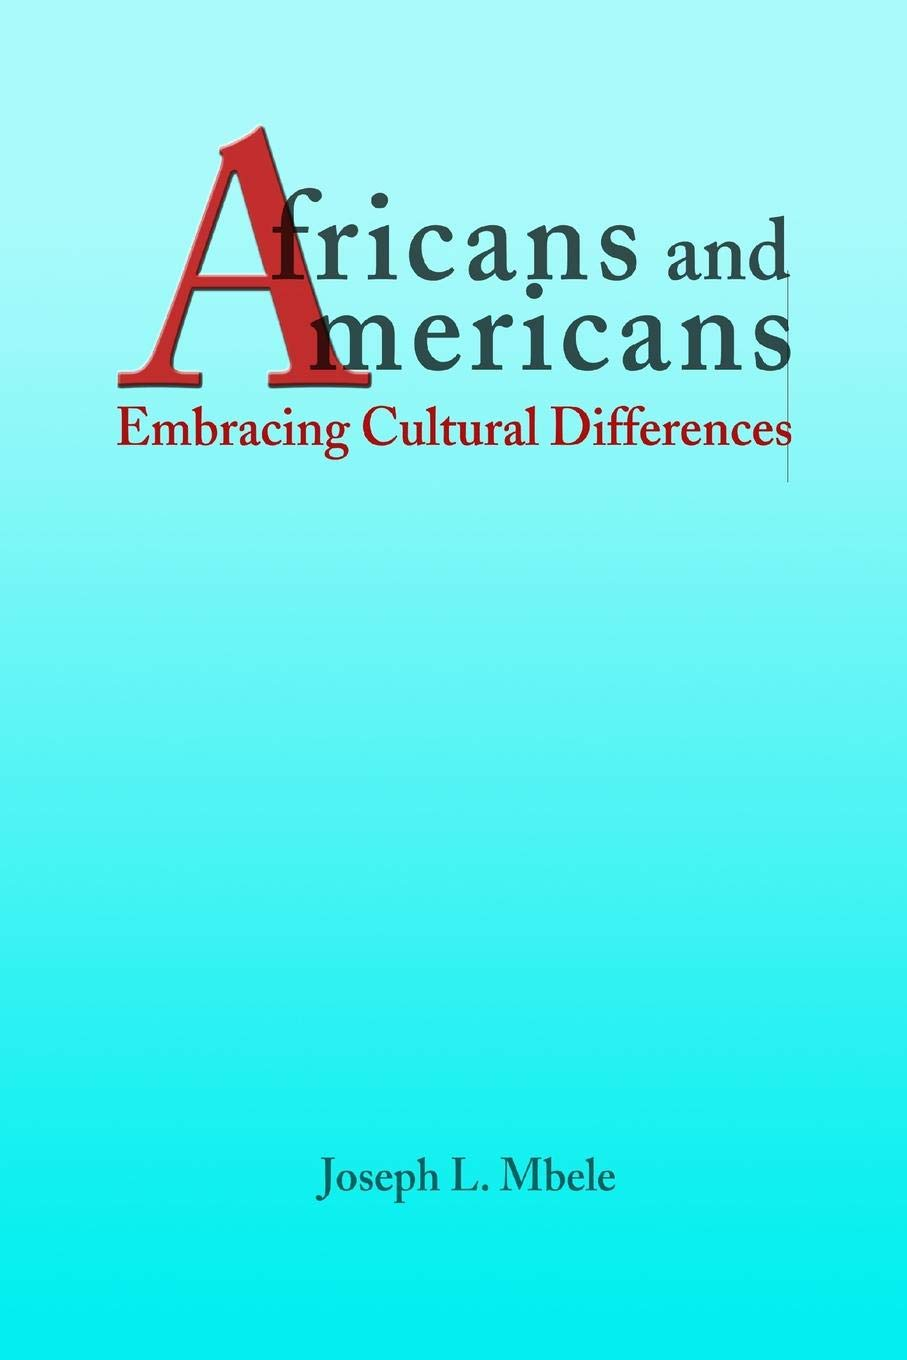 African and african american differences